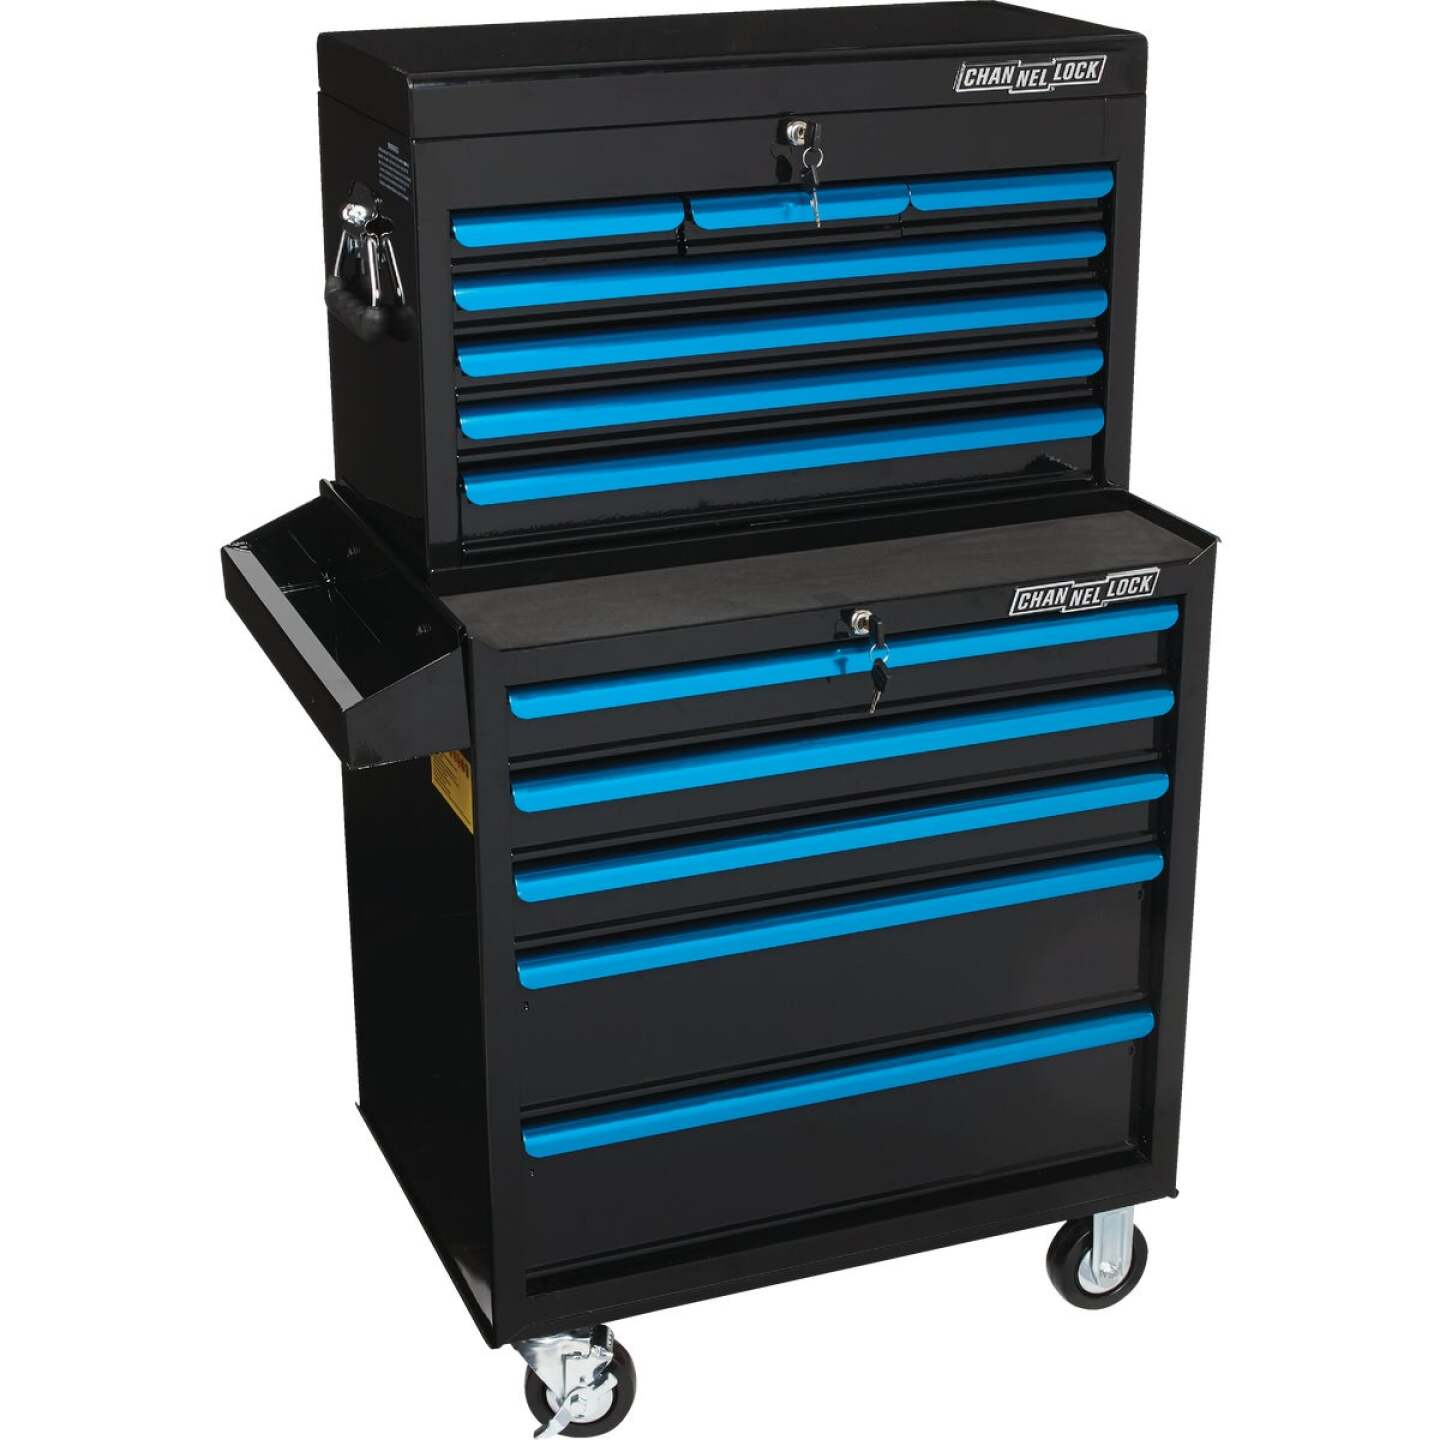 Channellock 26 In. 5-Drawer Tool Roller Cabinet Image 4